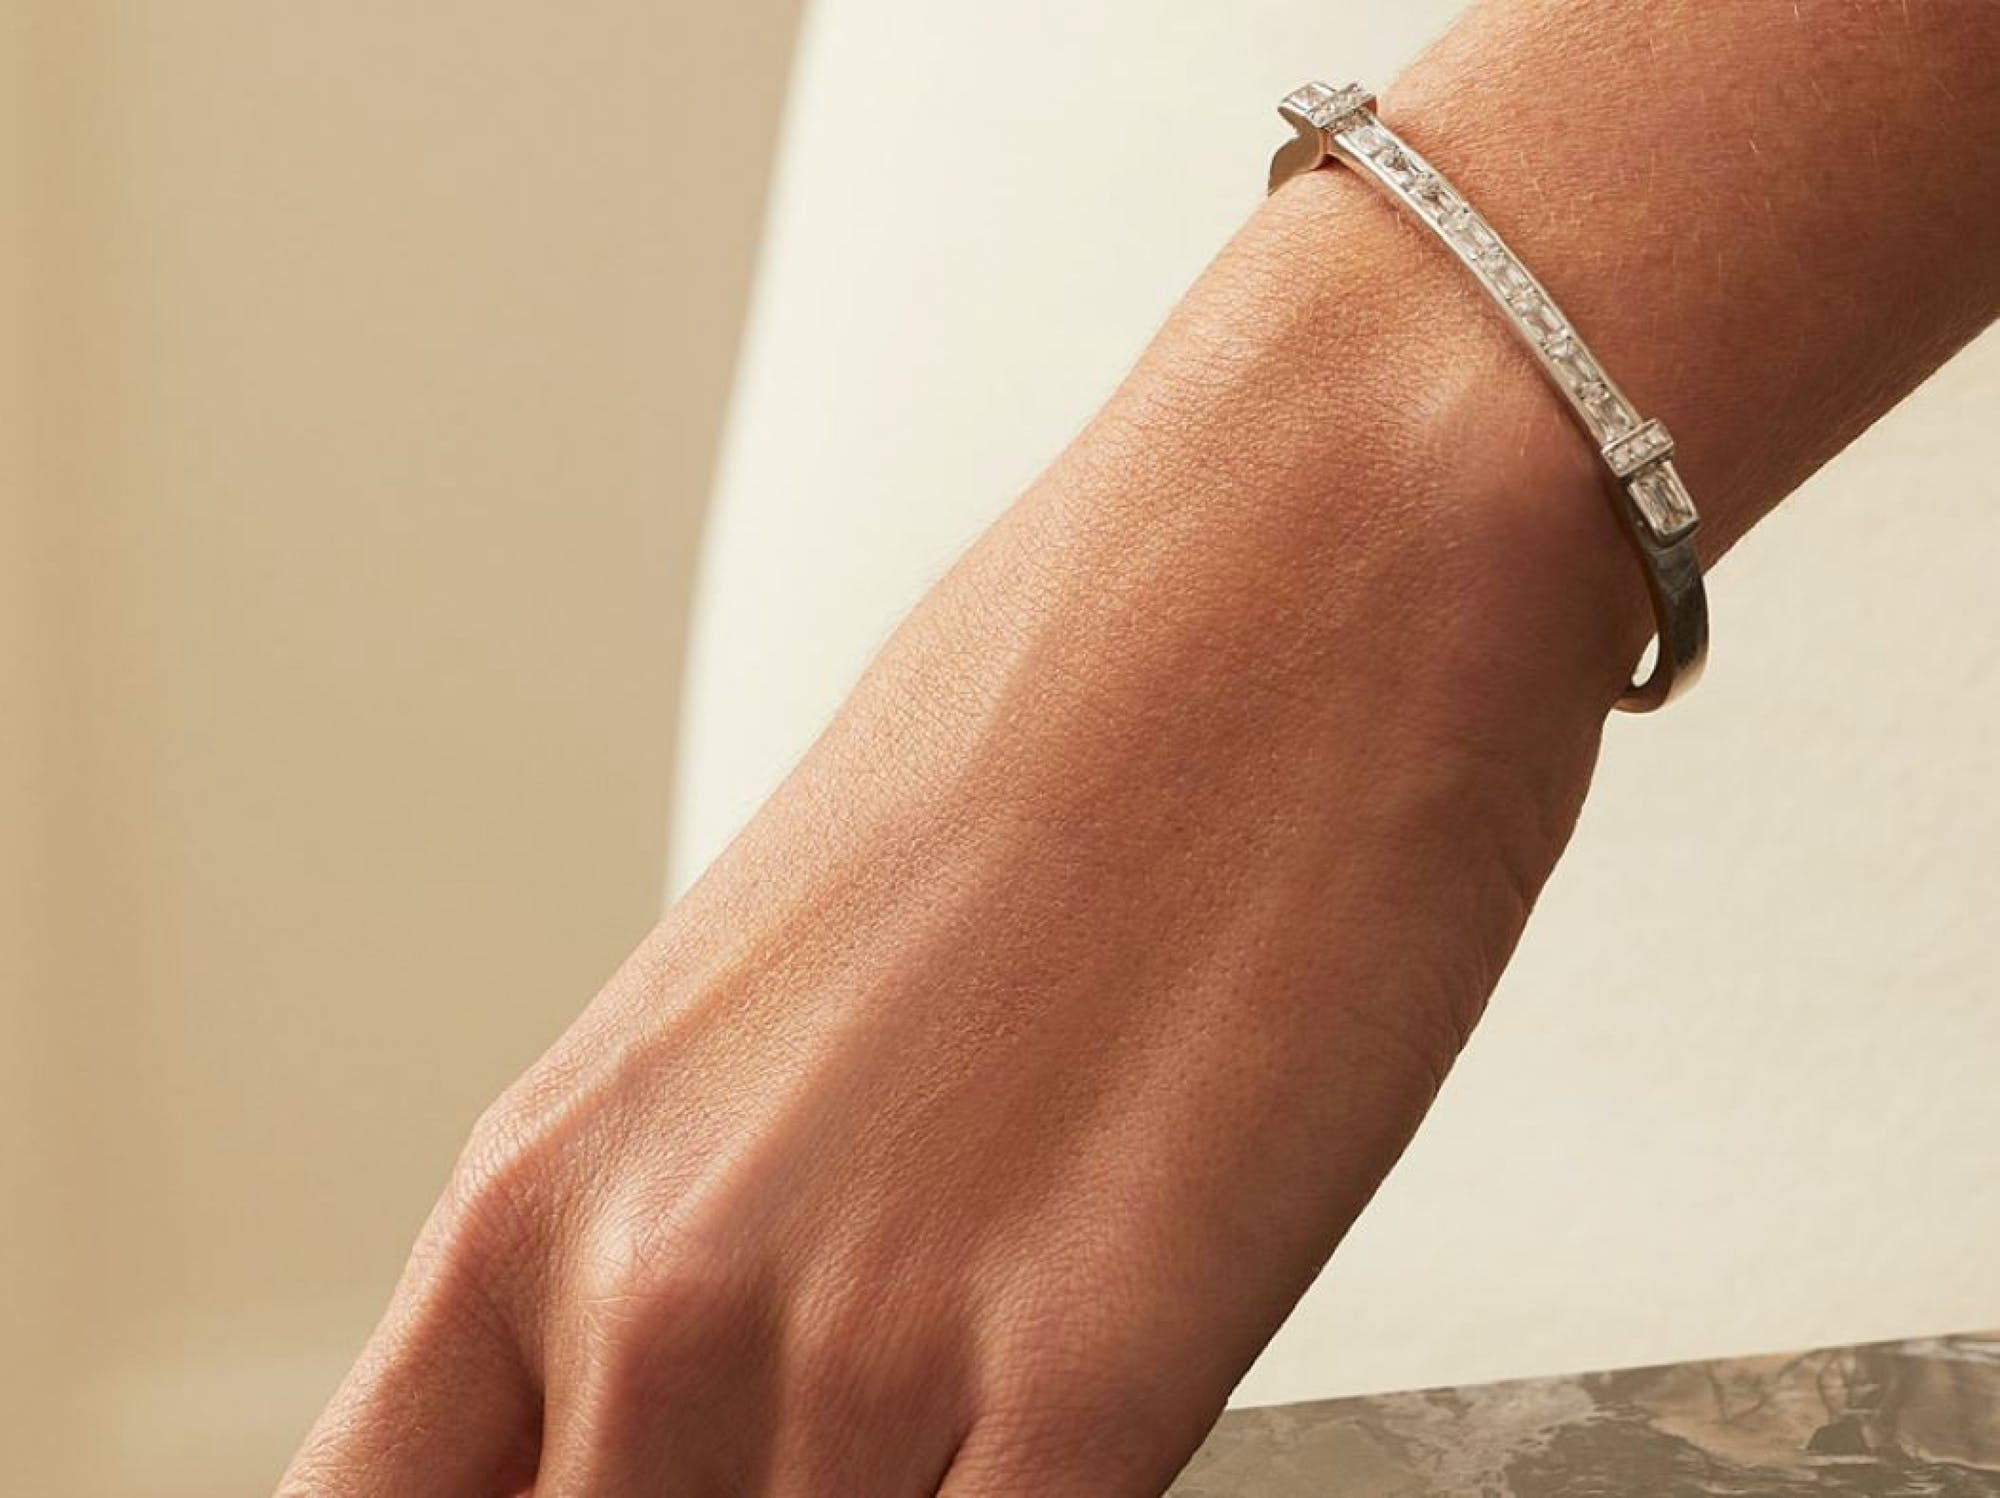 Member News Boodles introduces genderless jewellery with the new Trapeze collection